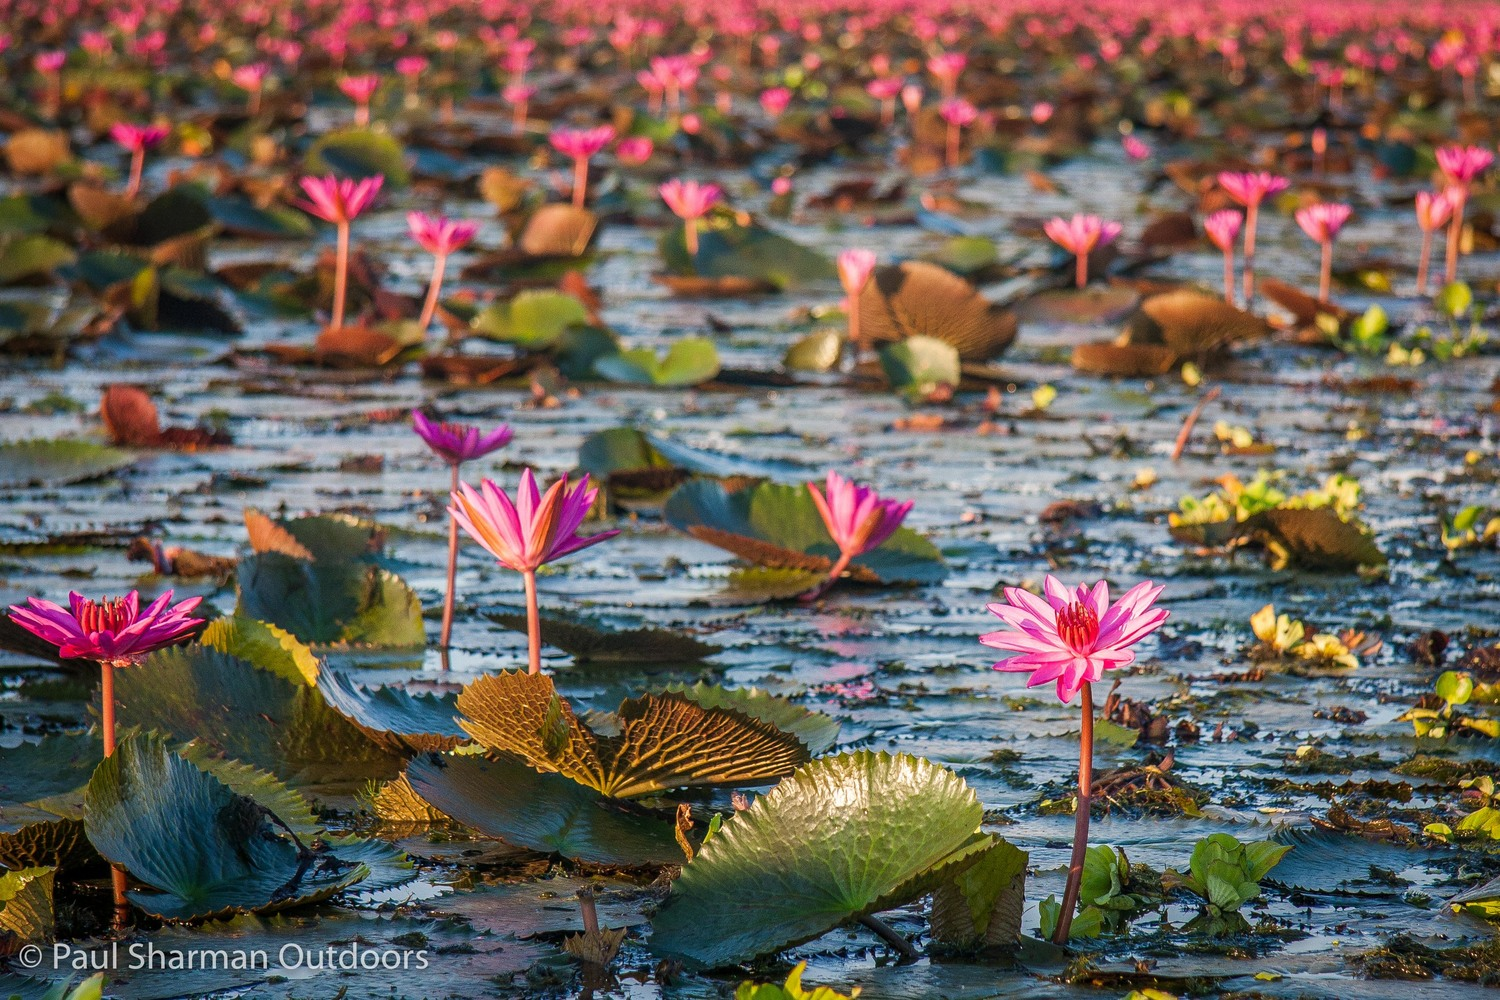 Travels in thailand the lotus gardens of thale noi paul sharman the lotus gardens of thale noi izmirmasajfo